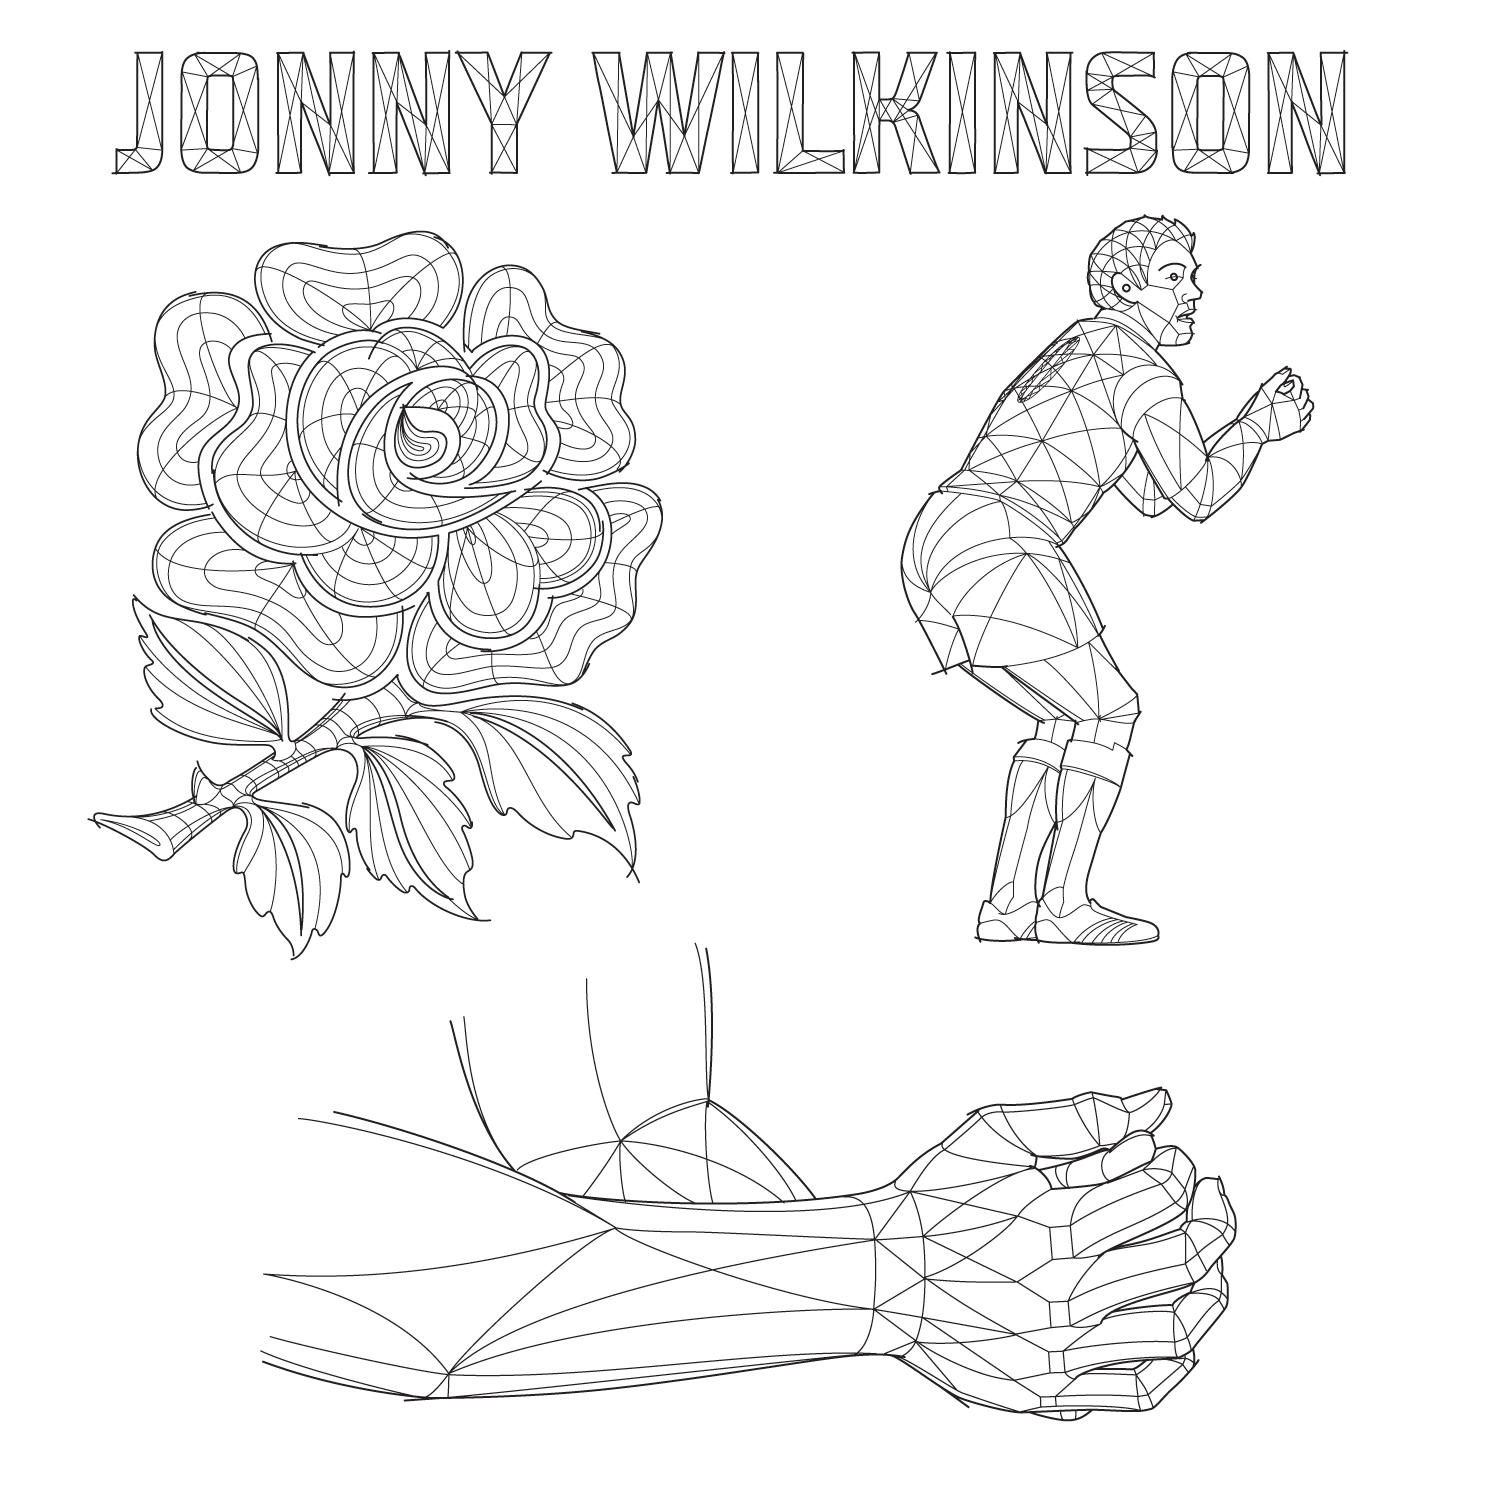 3D Wire Frame style drawings for a BBC bumper videoadvertising a Radio 4 Today Programmedocumentary which described Jonny Wilkinson's return to first class rugby after injury and his mental preparation for life after rugby.